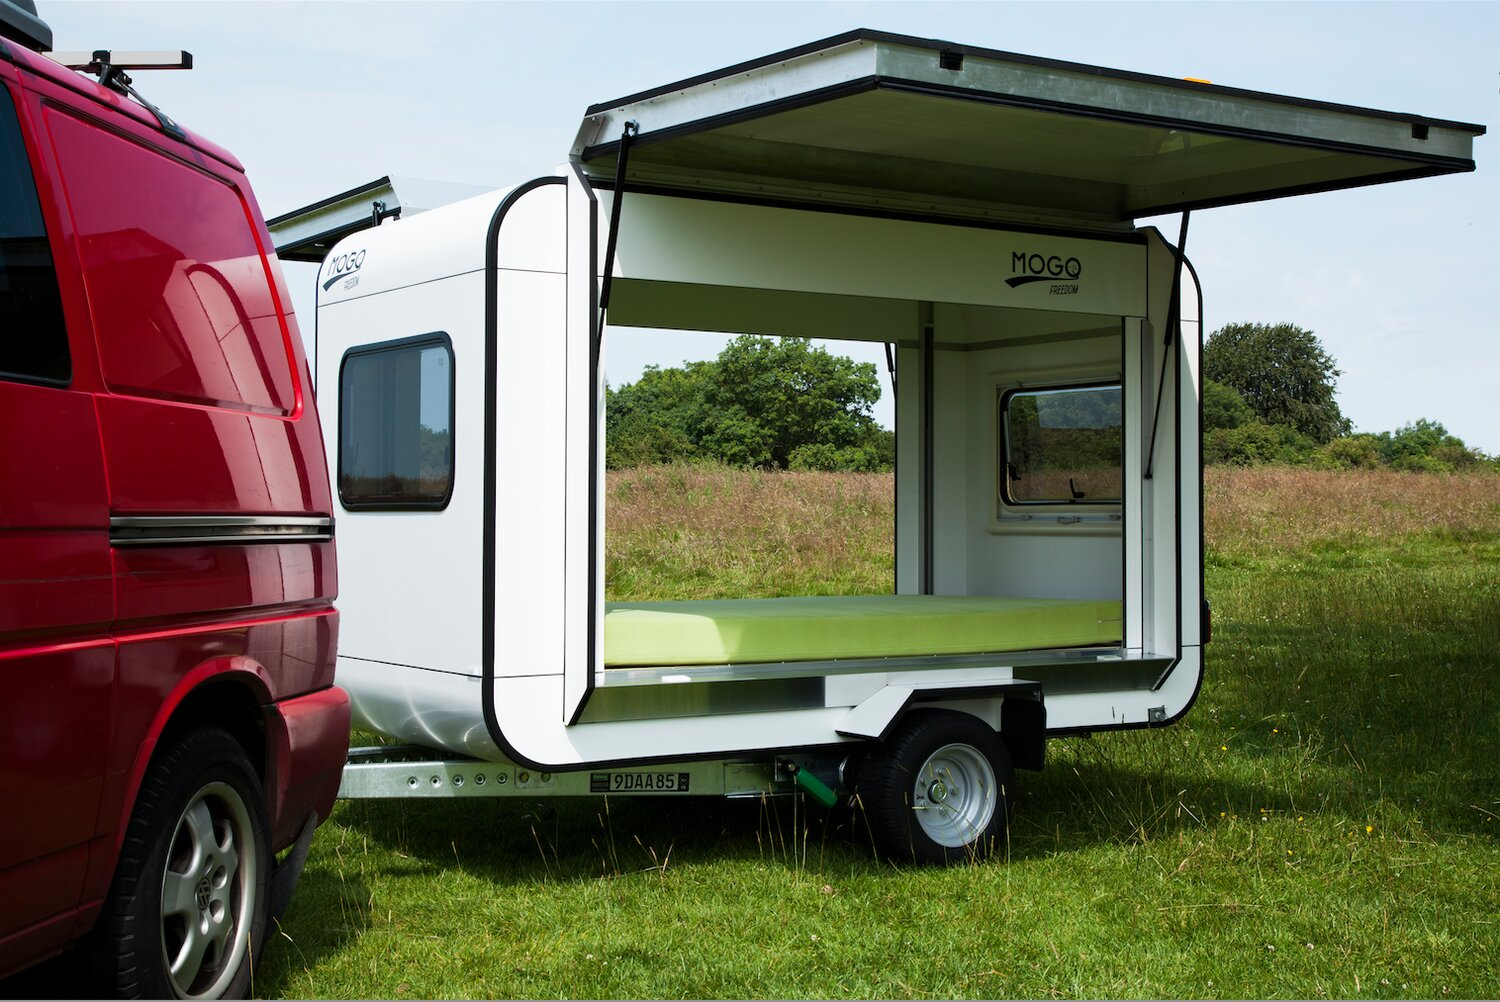 Conqueror S Uev440 Luxurious Camper Costs 62 700